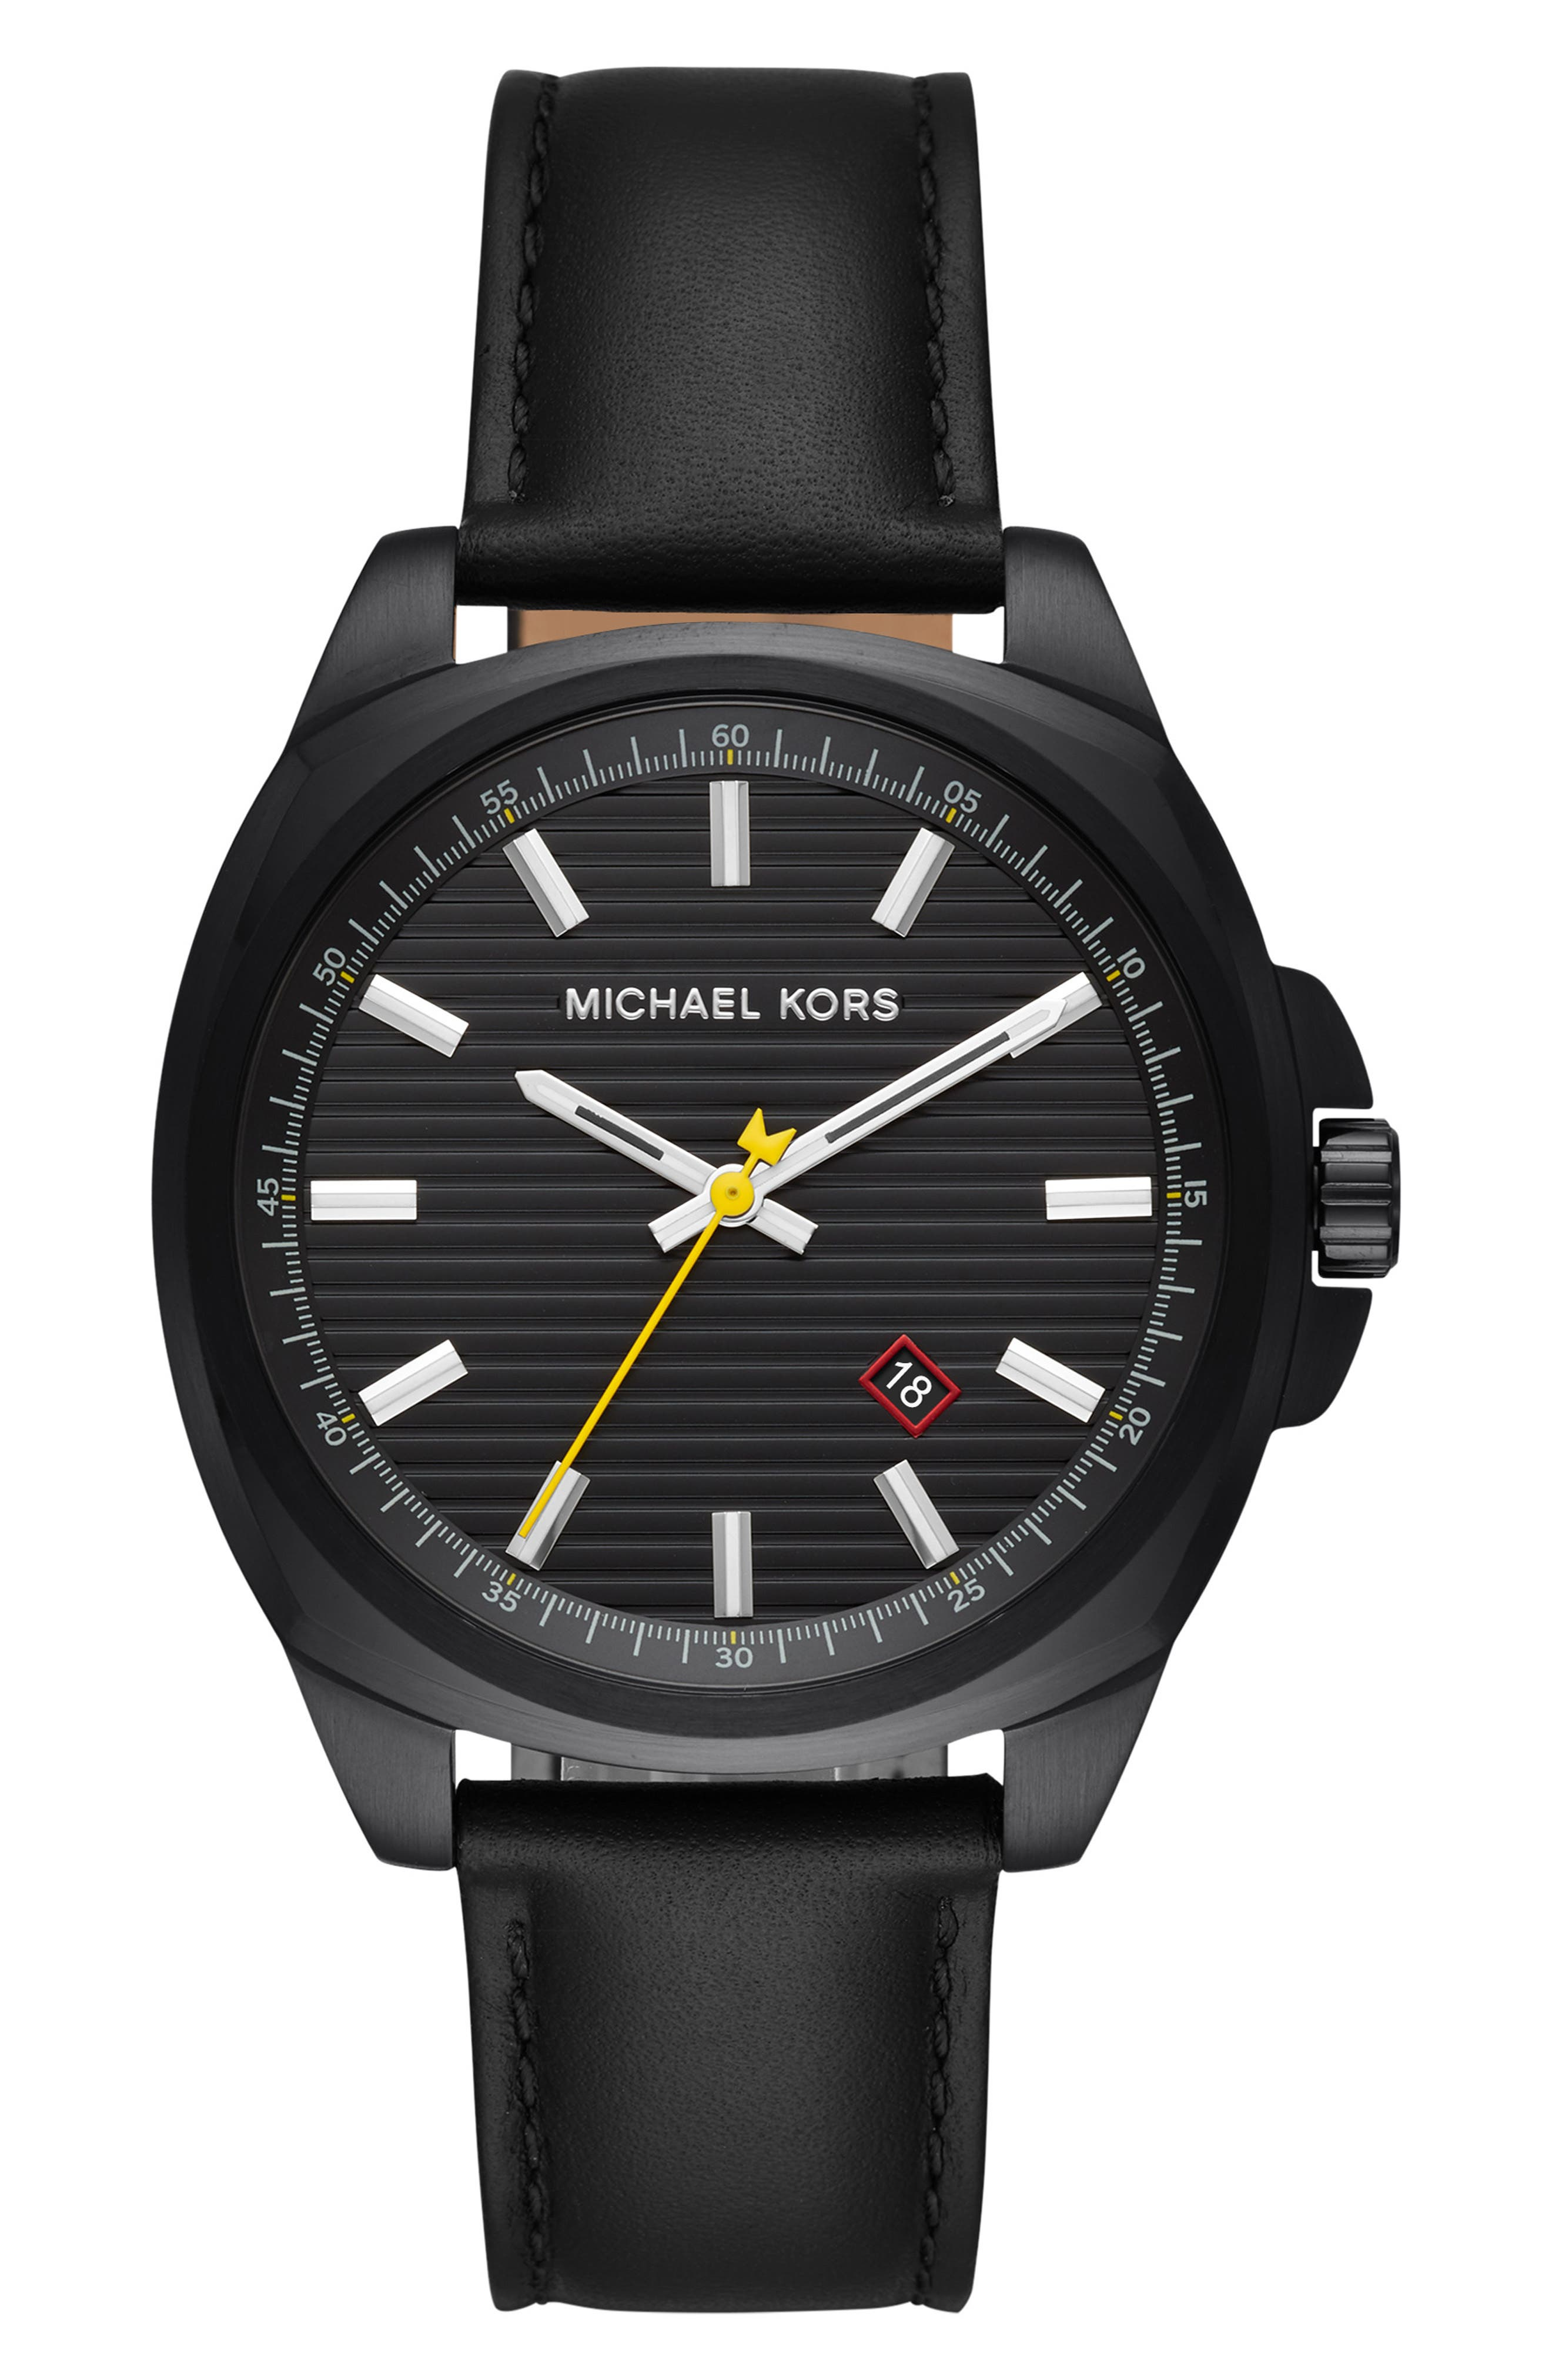 MICHAEL KORS, Bryson Leather Strap Watch, 42mm, Main thumbnail 1, color, 001